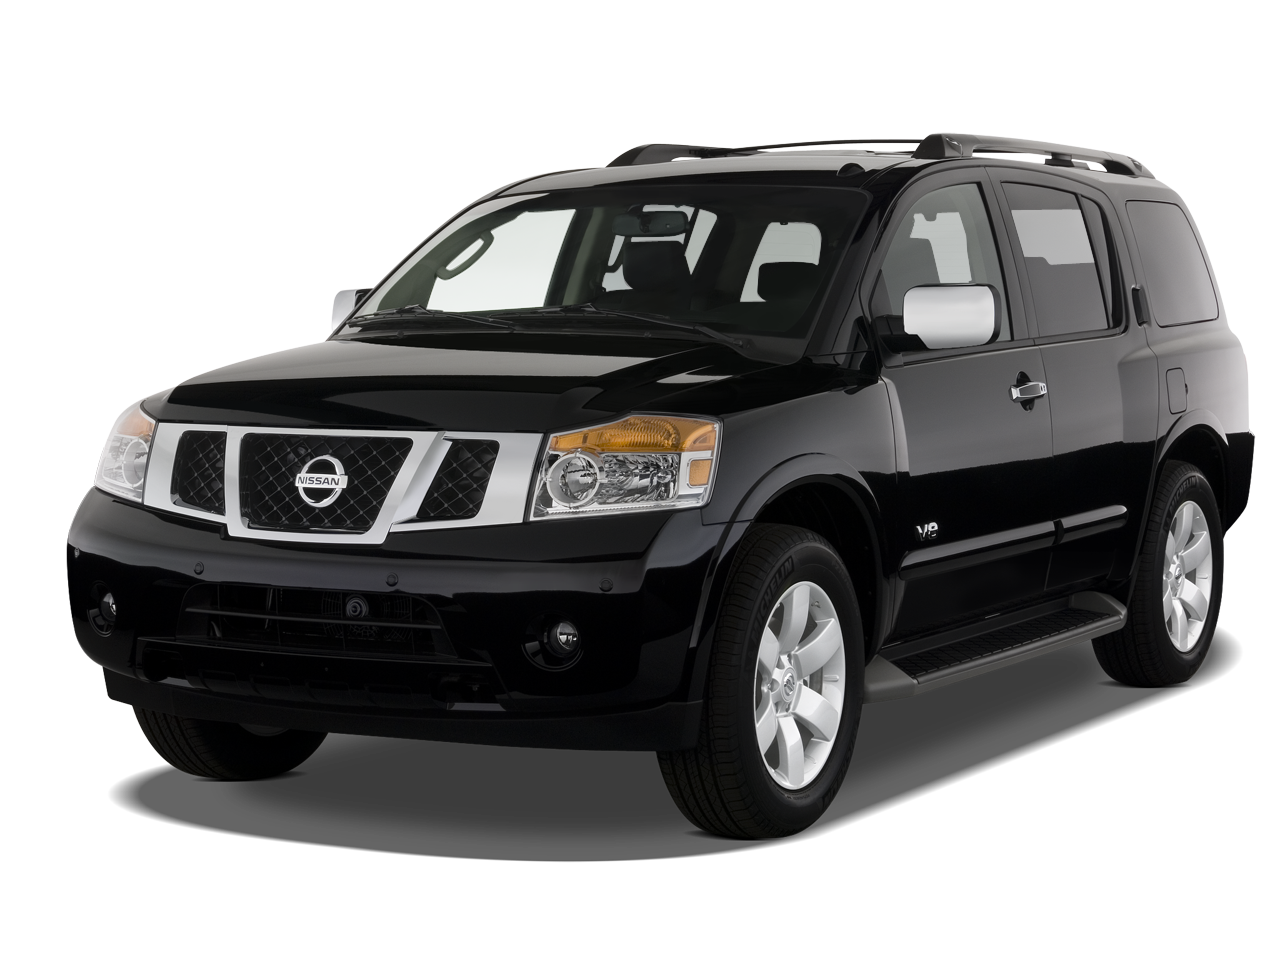 2009 Nissan Armada LE 4x4 - Nissan Full-Size SUV Review ...